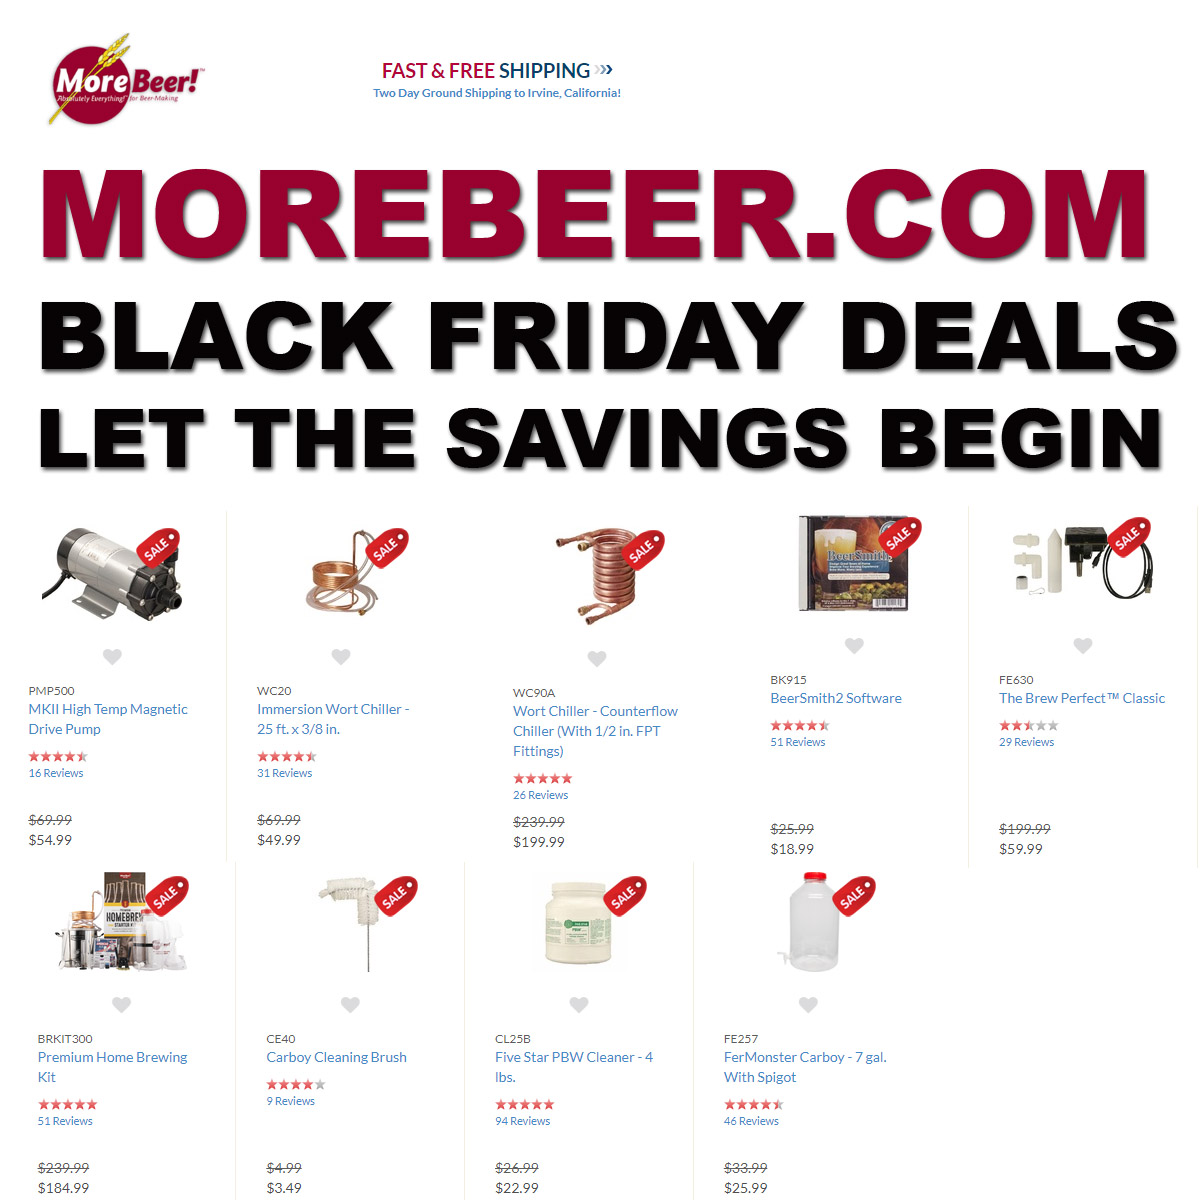 MoreBeer Save Up To 75% On Popular Homebrewing Items with this MoreBeer.com Black Friday Promo Code.  Plus get Free Shiping on orders over $59! The MoreBeer Black Friday Sale! Coupon Code